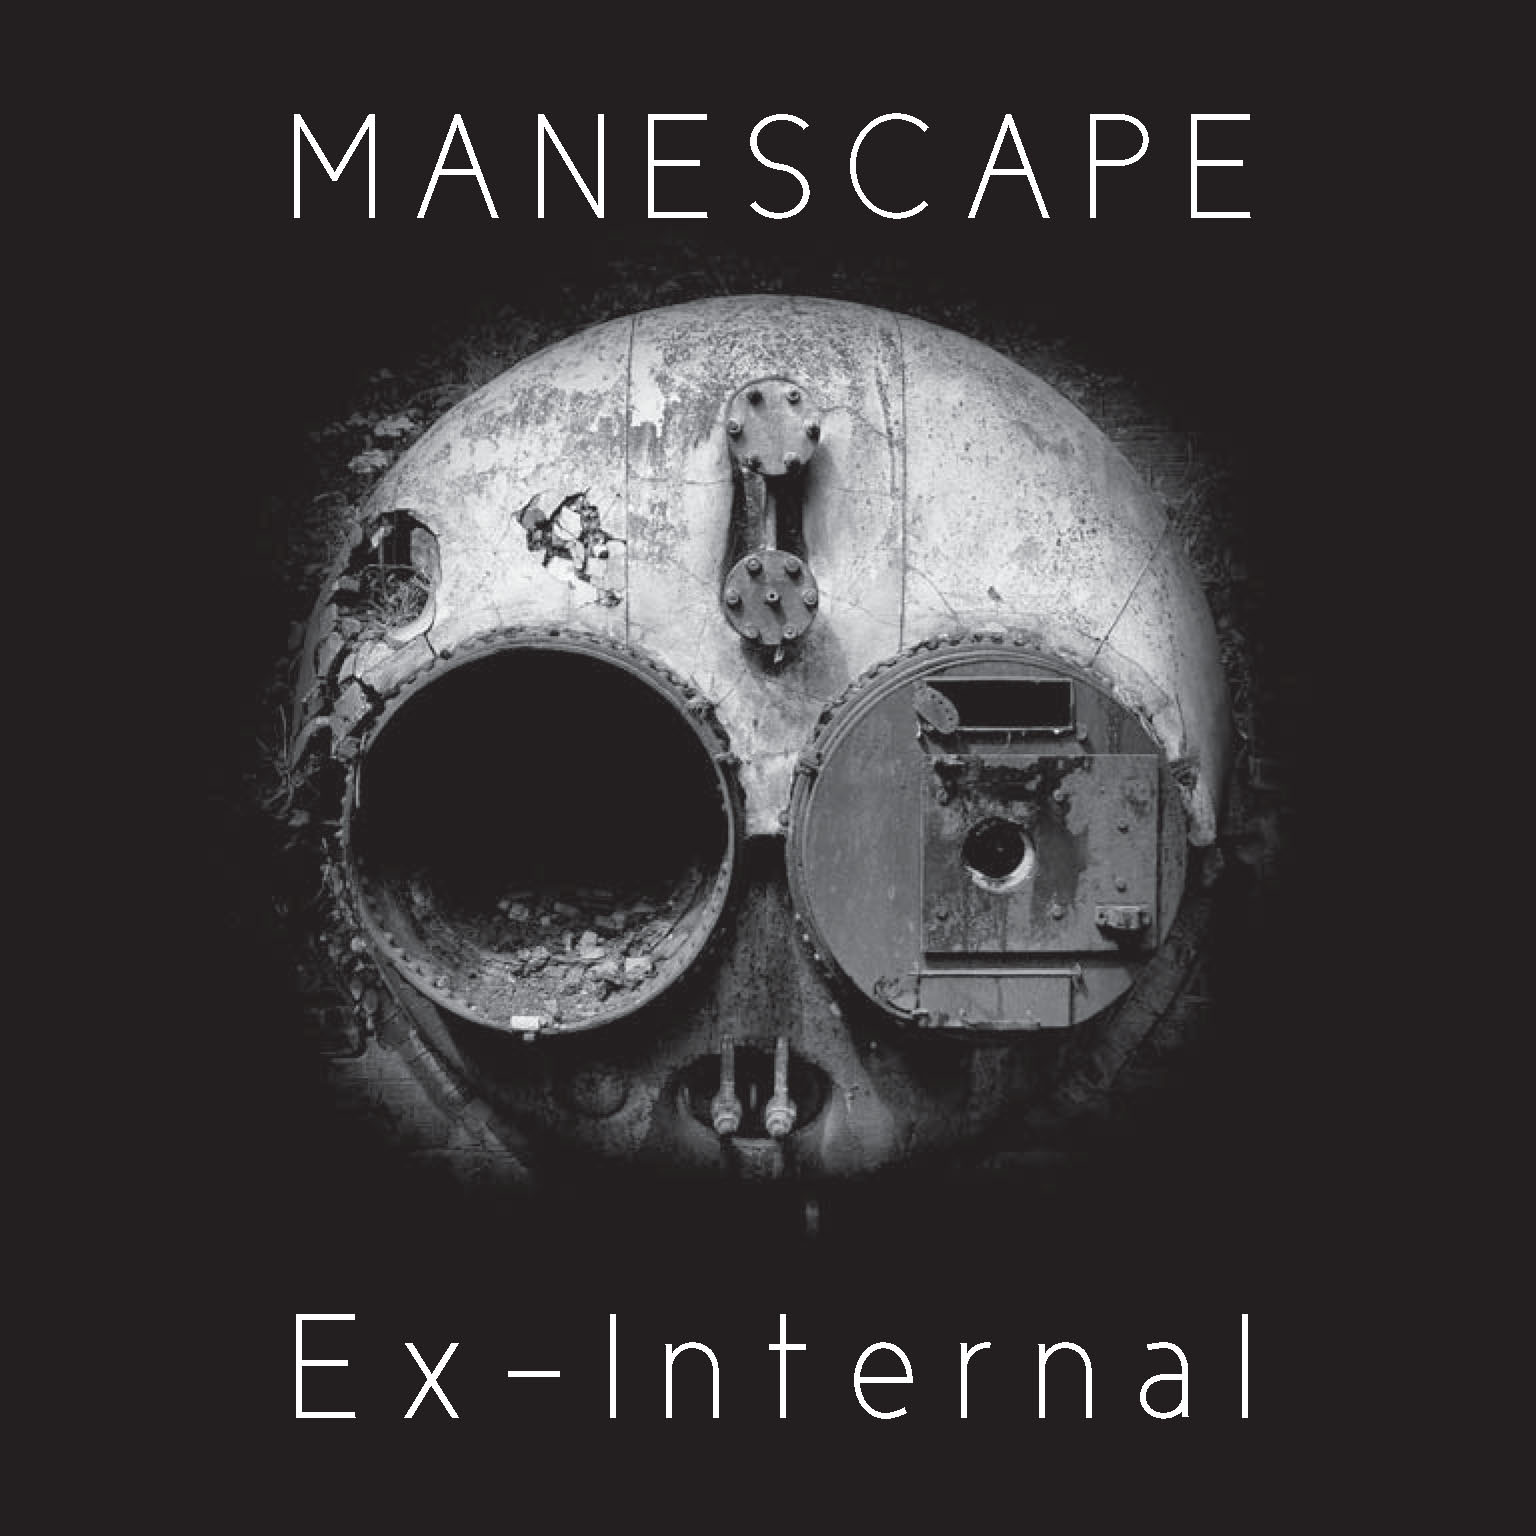 Manescape Ex-Internal Cover